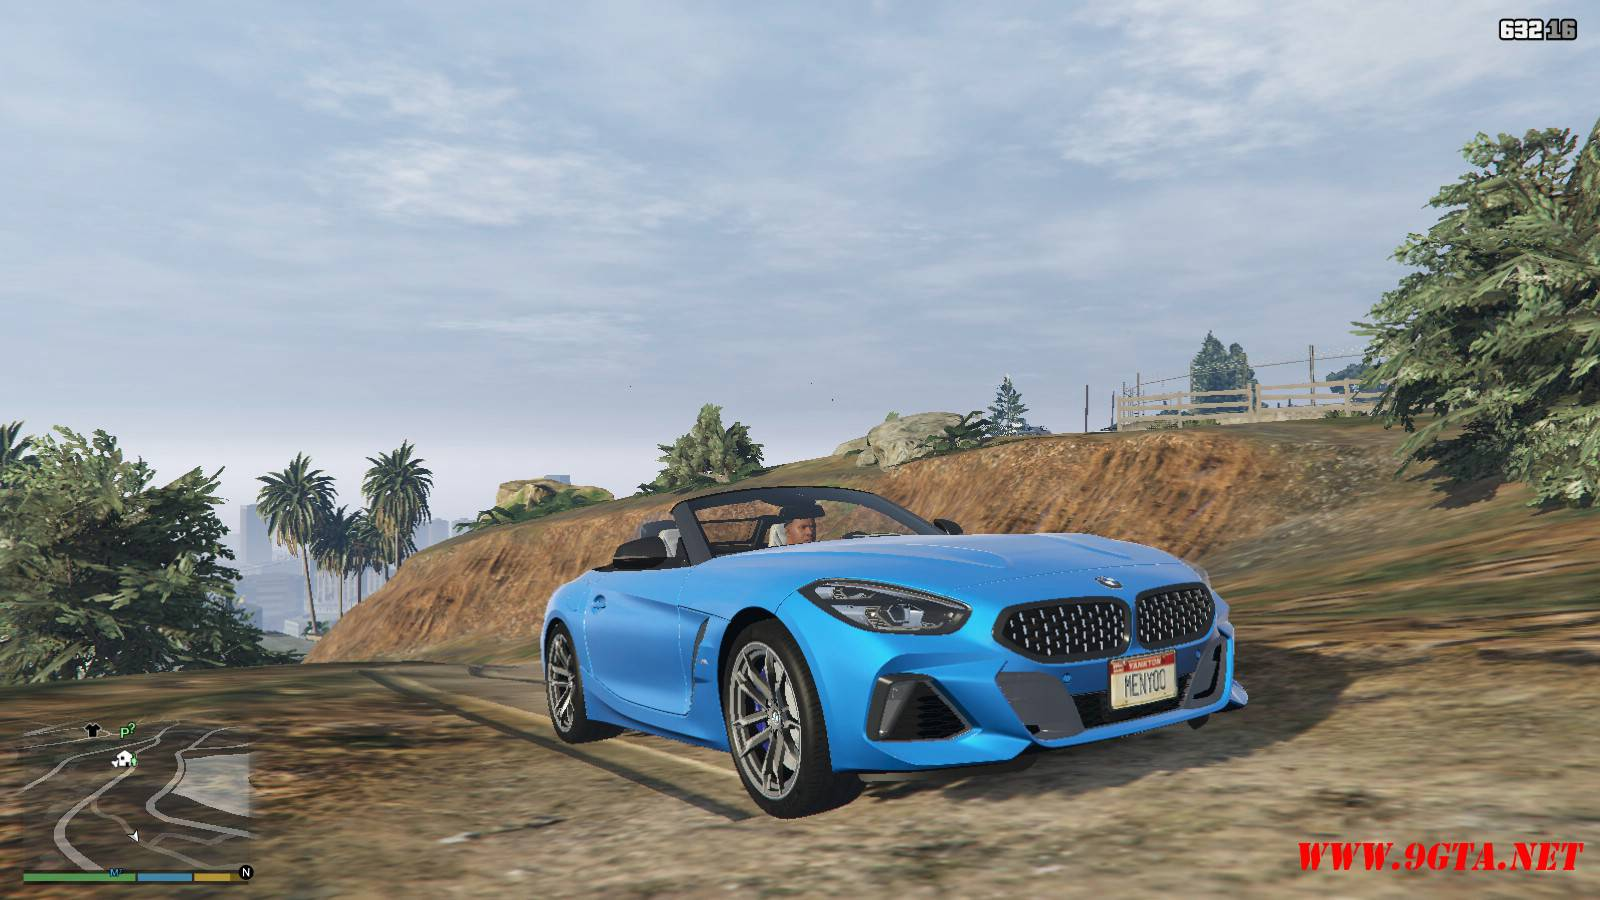 2019 BMW Z4 M40i v2.0 Mod For GTA5 (7)